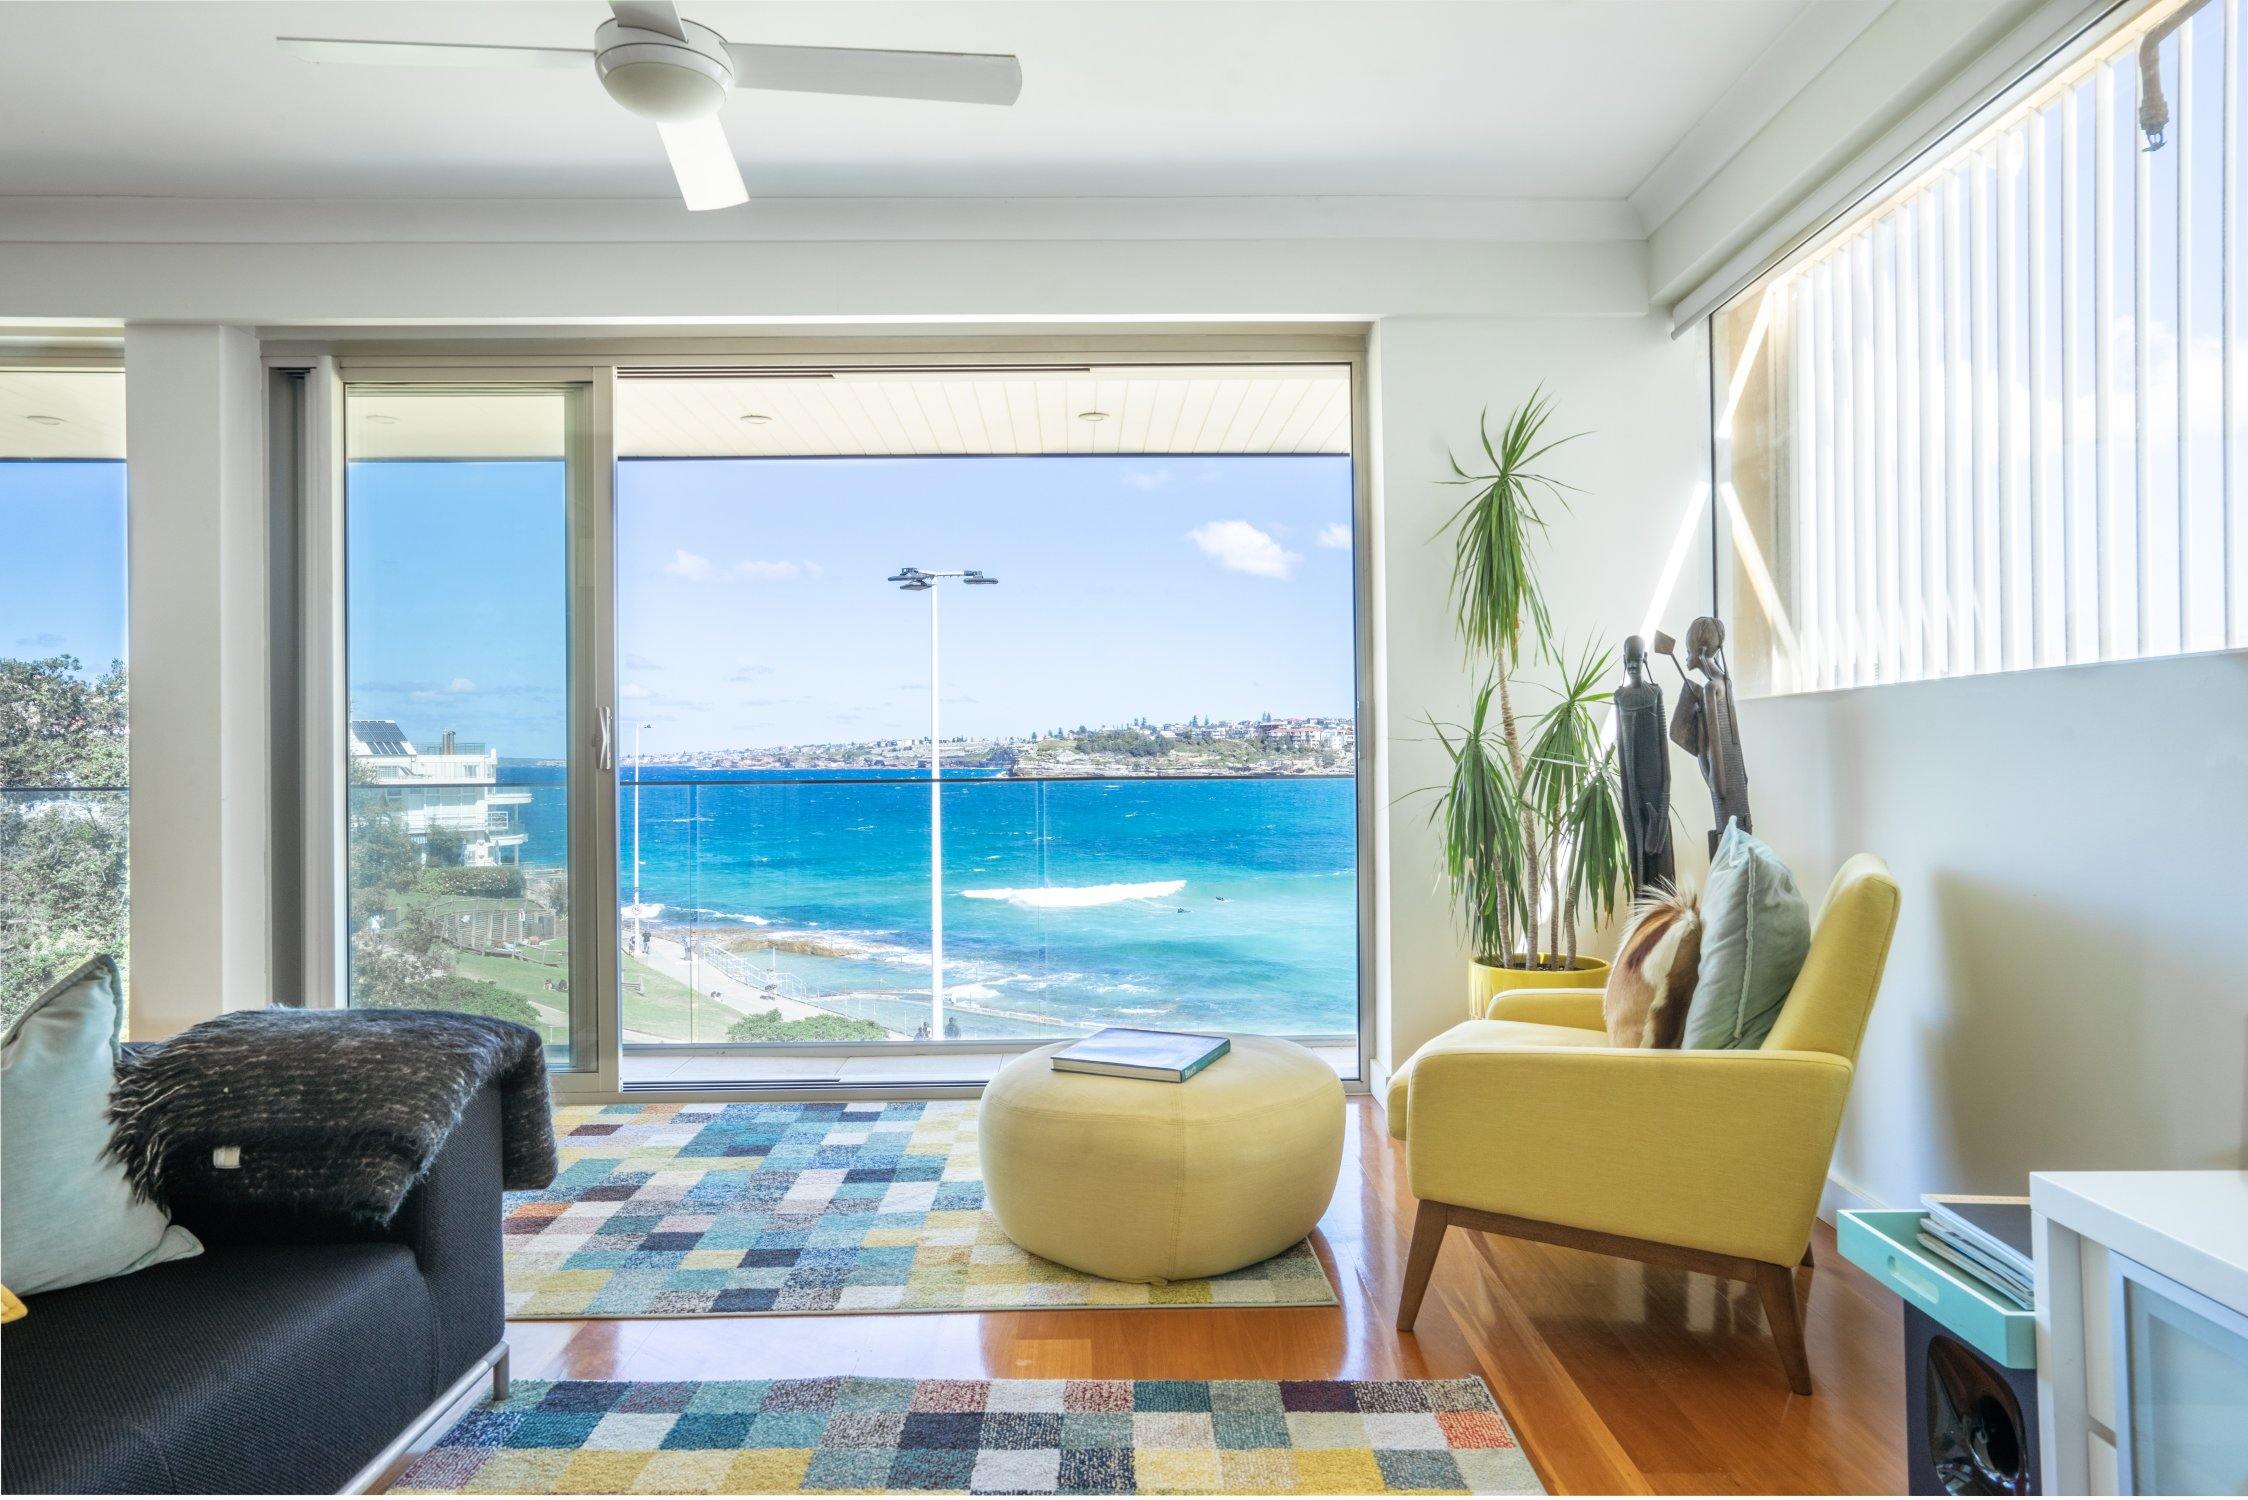 Kevin's place beachfront apartment. Bondi Beach Holiday Homes14.jpg